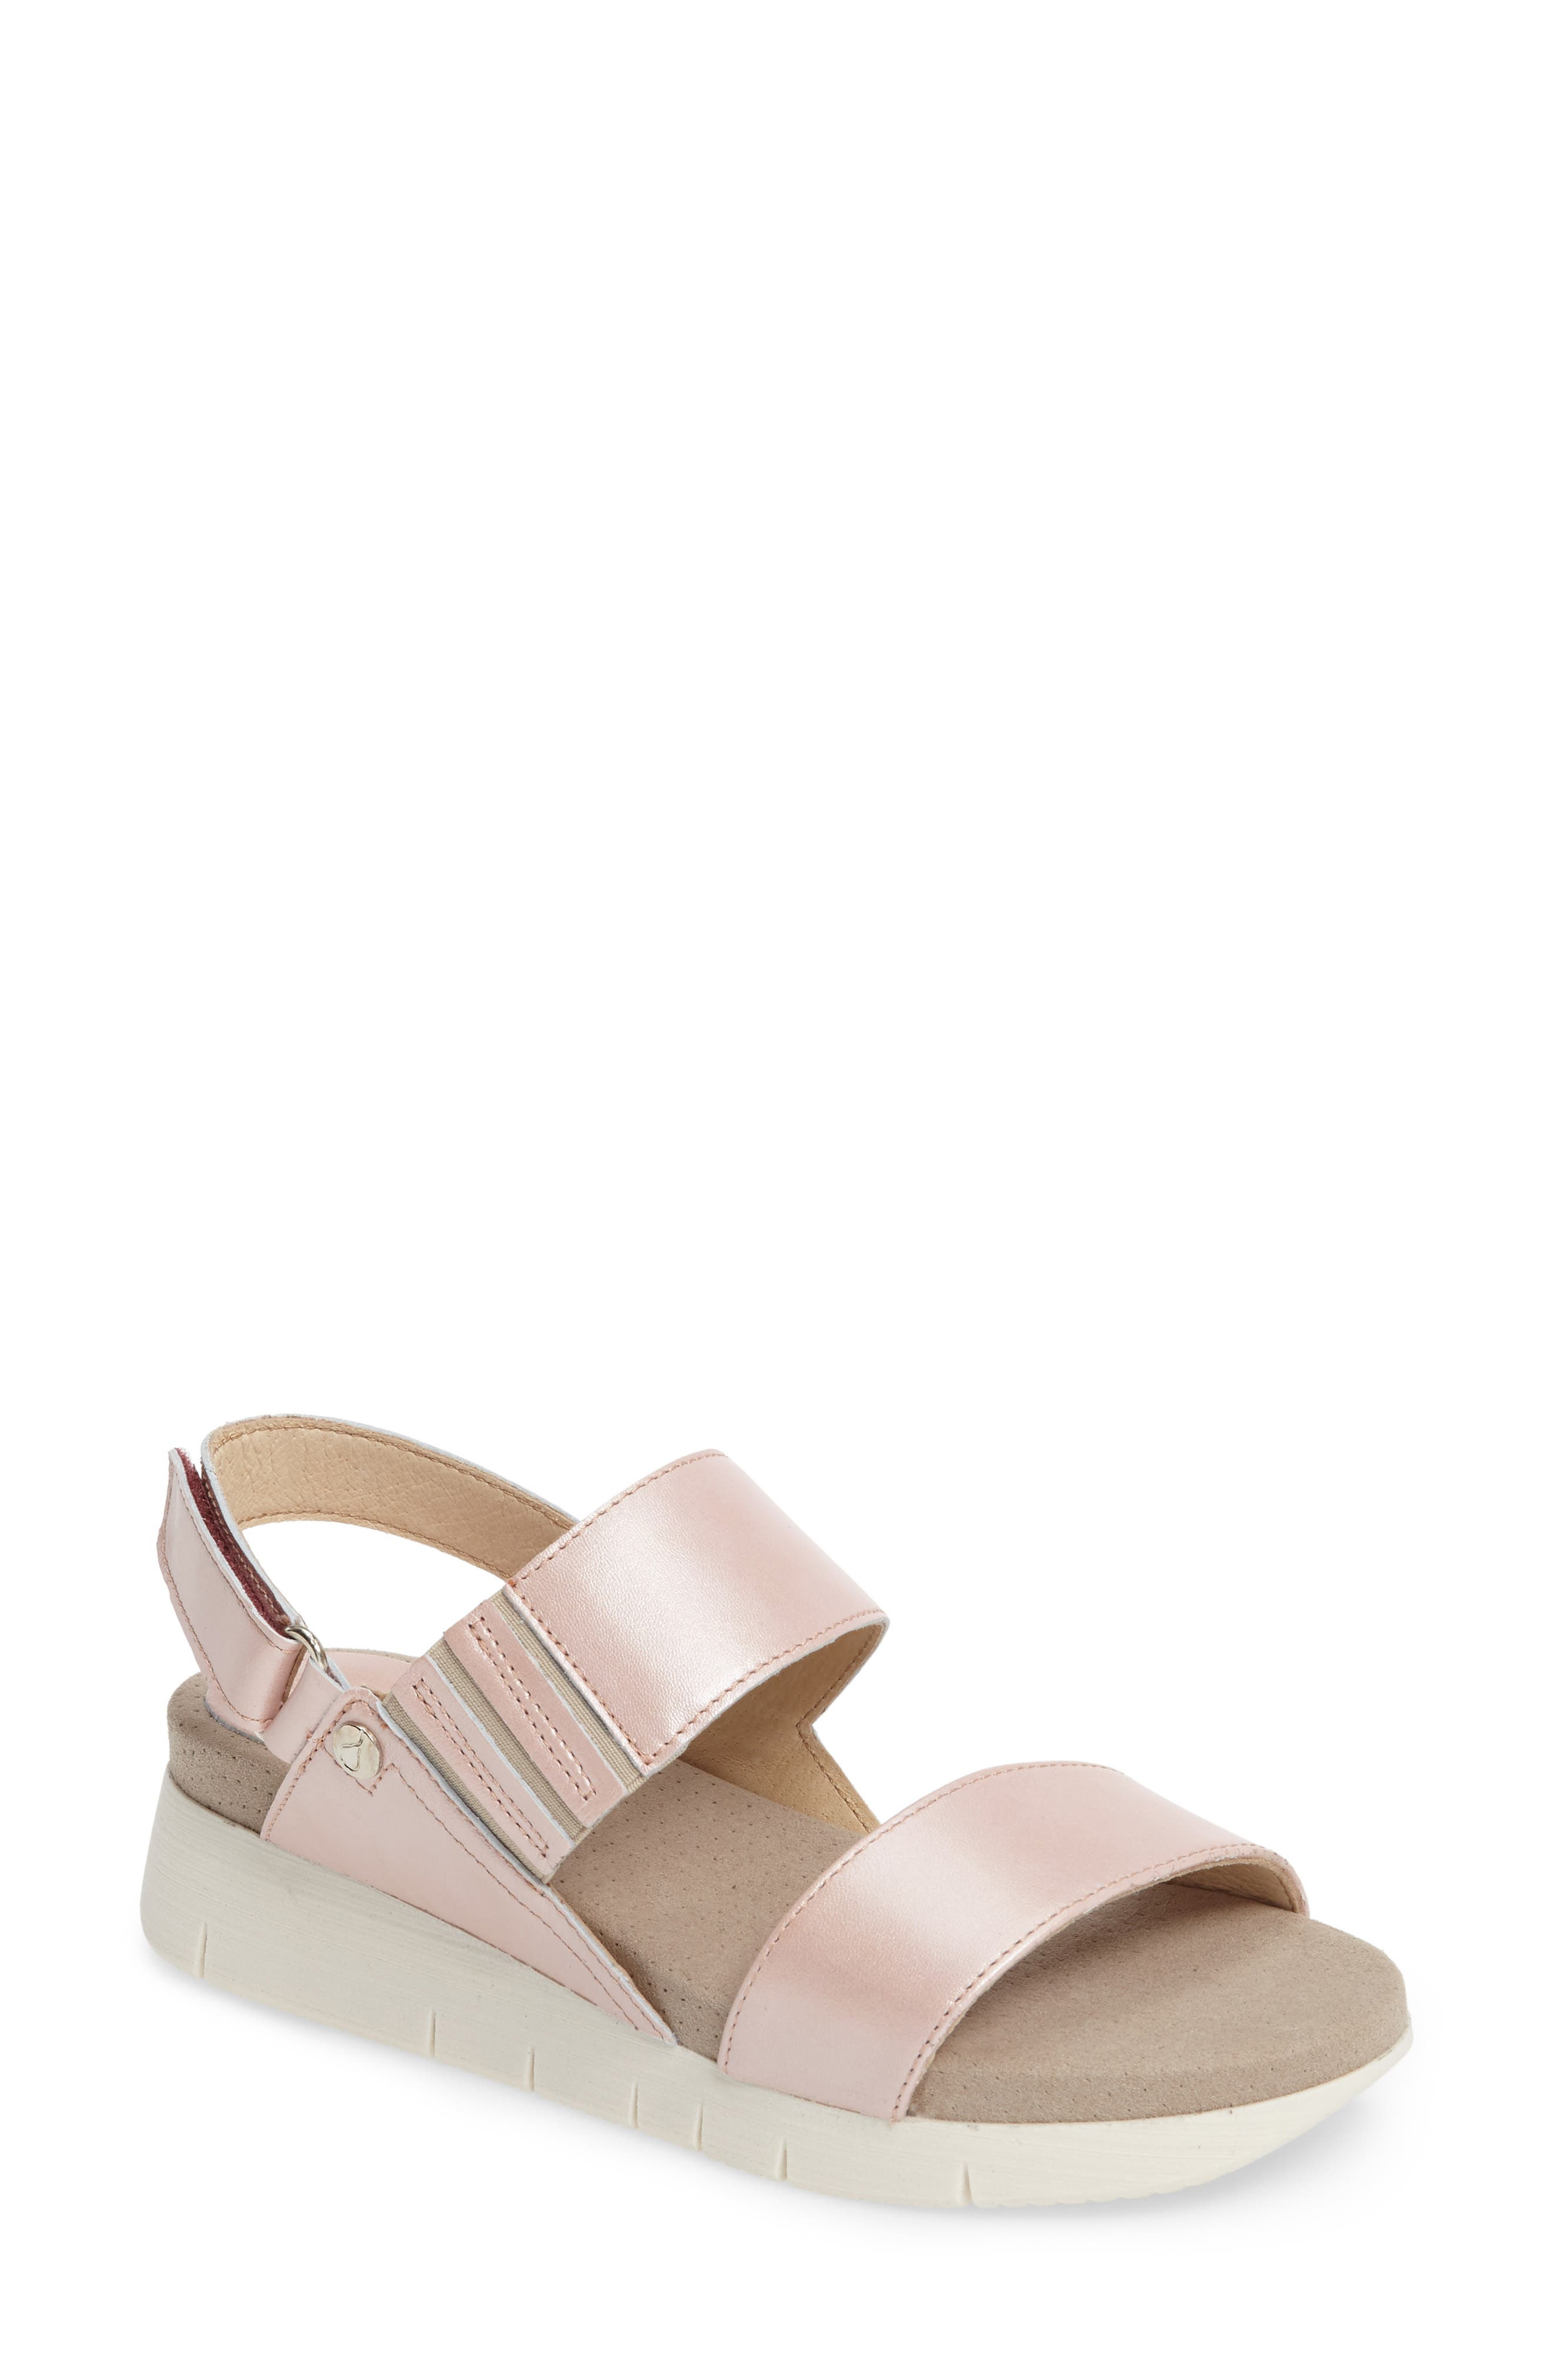 Bos. & Co. Payge Wedge Sandal, Pink